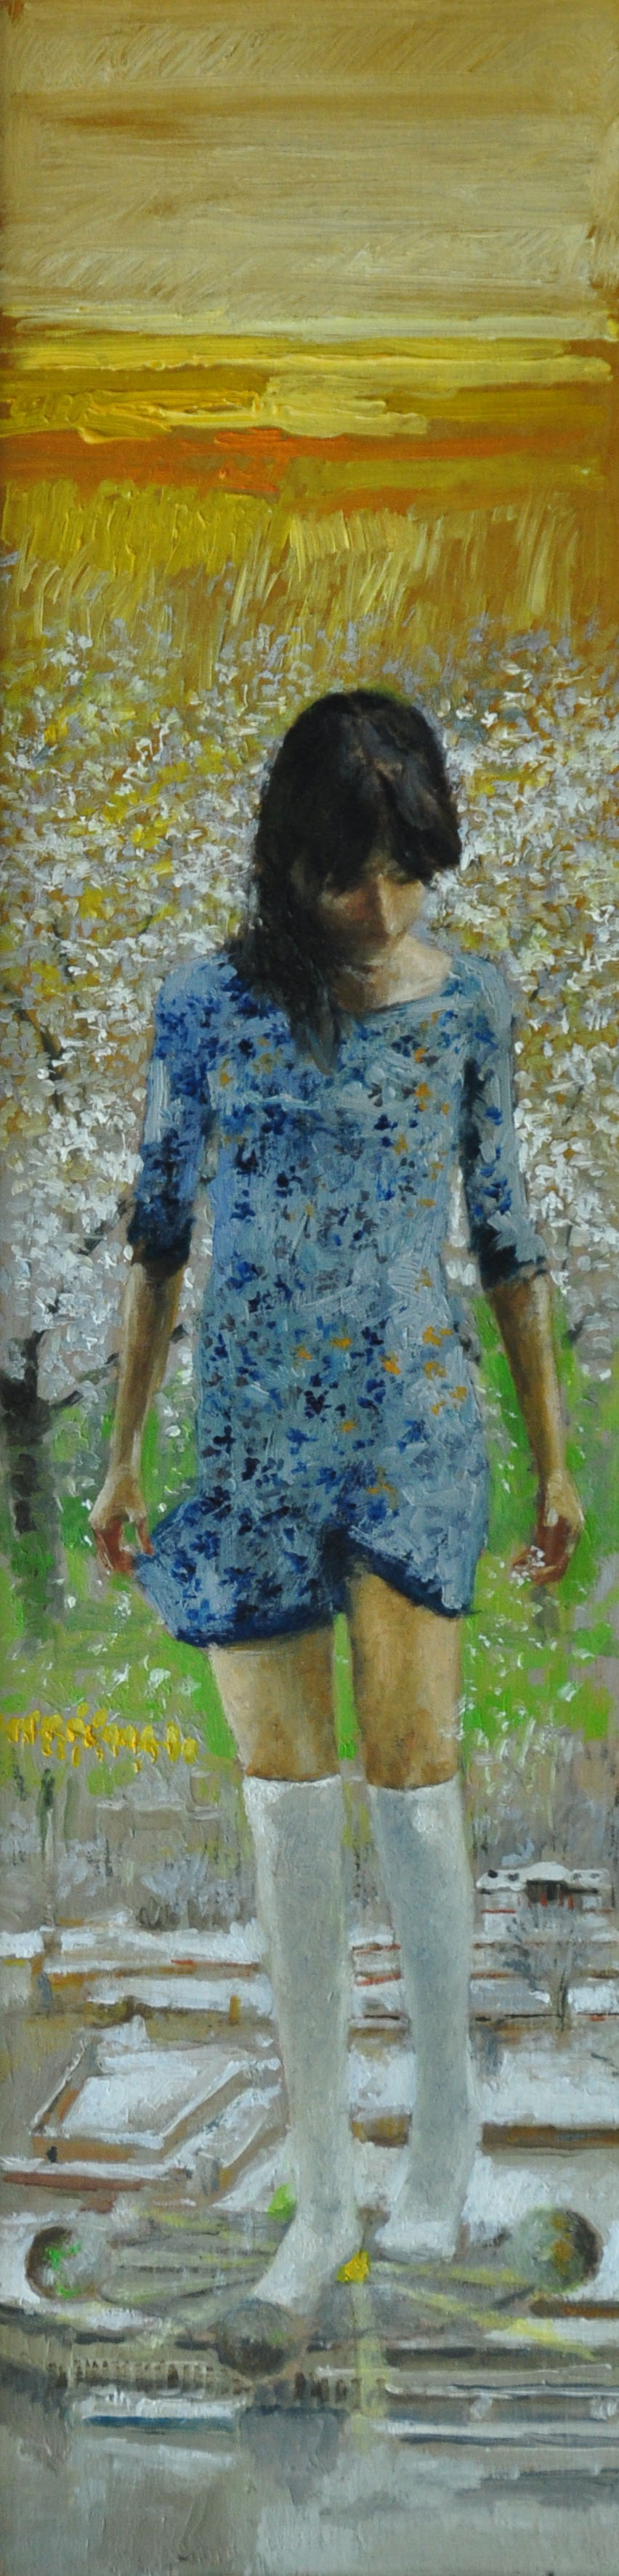 Mito Komatina - Oil Paintings